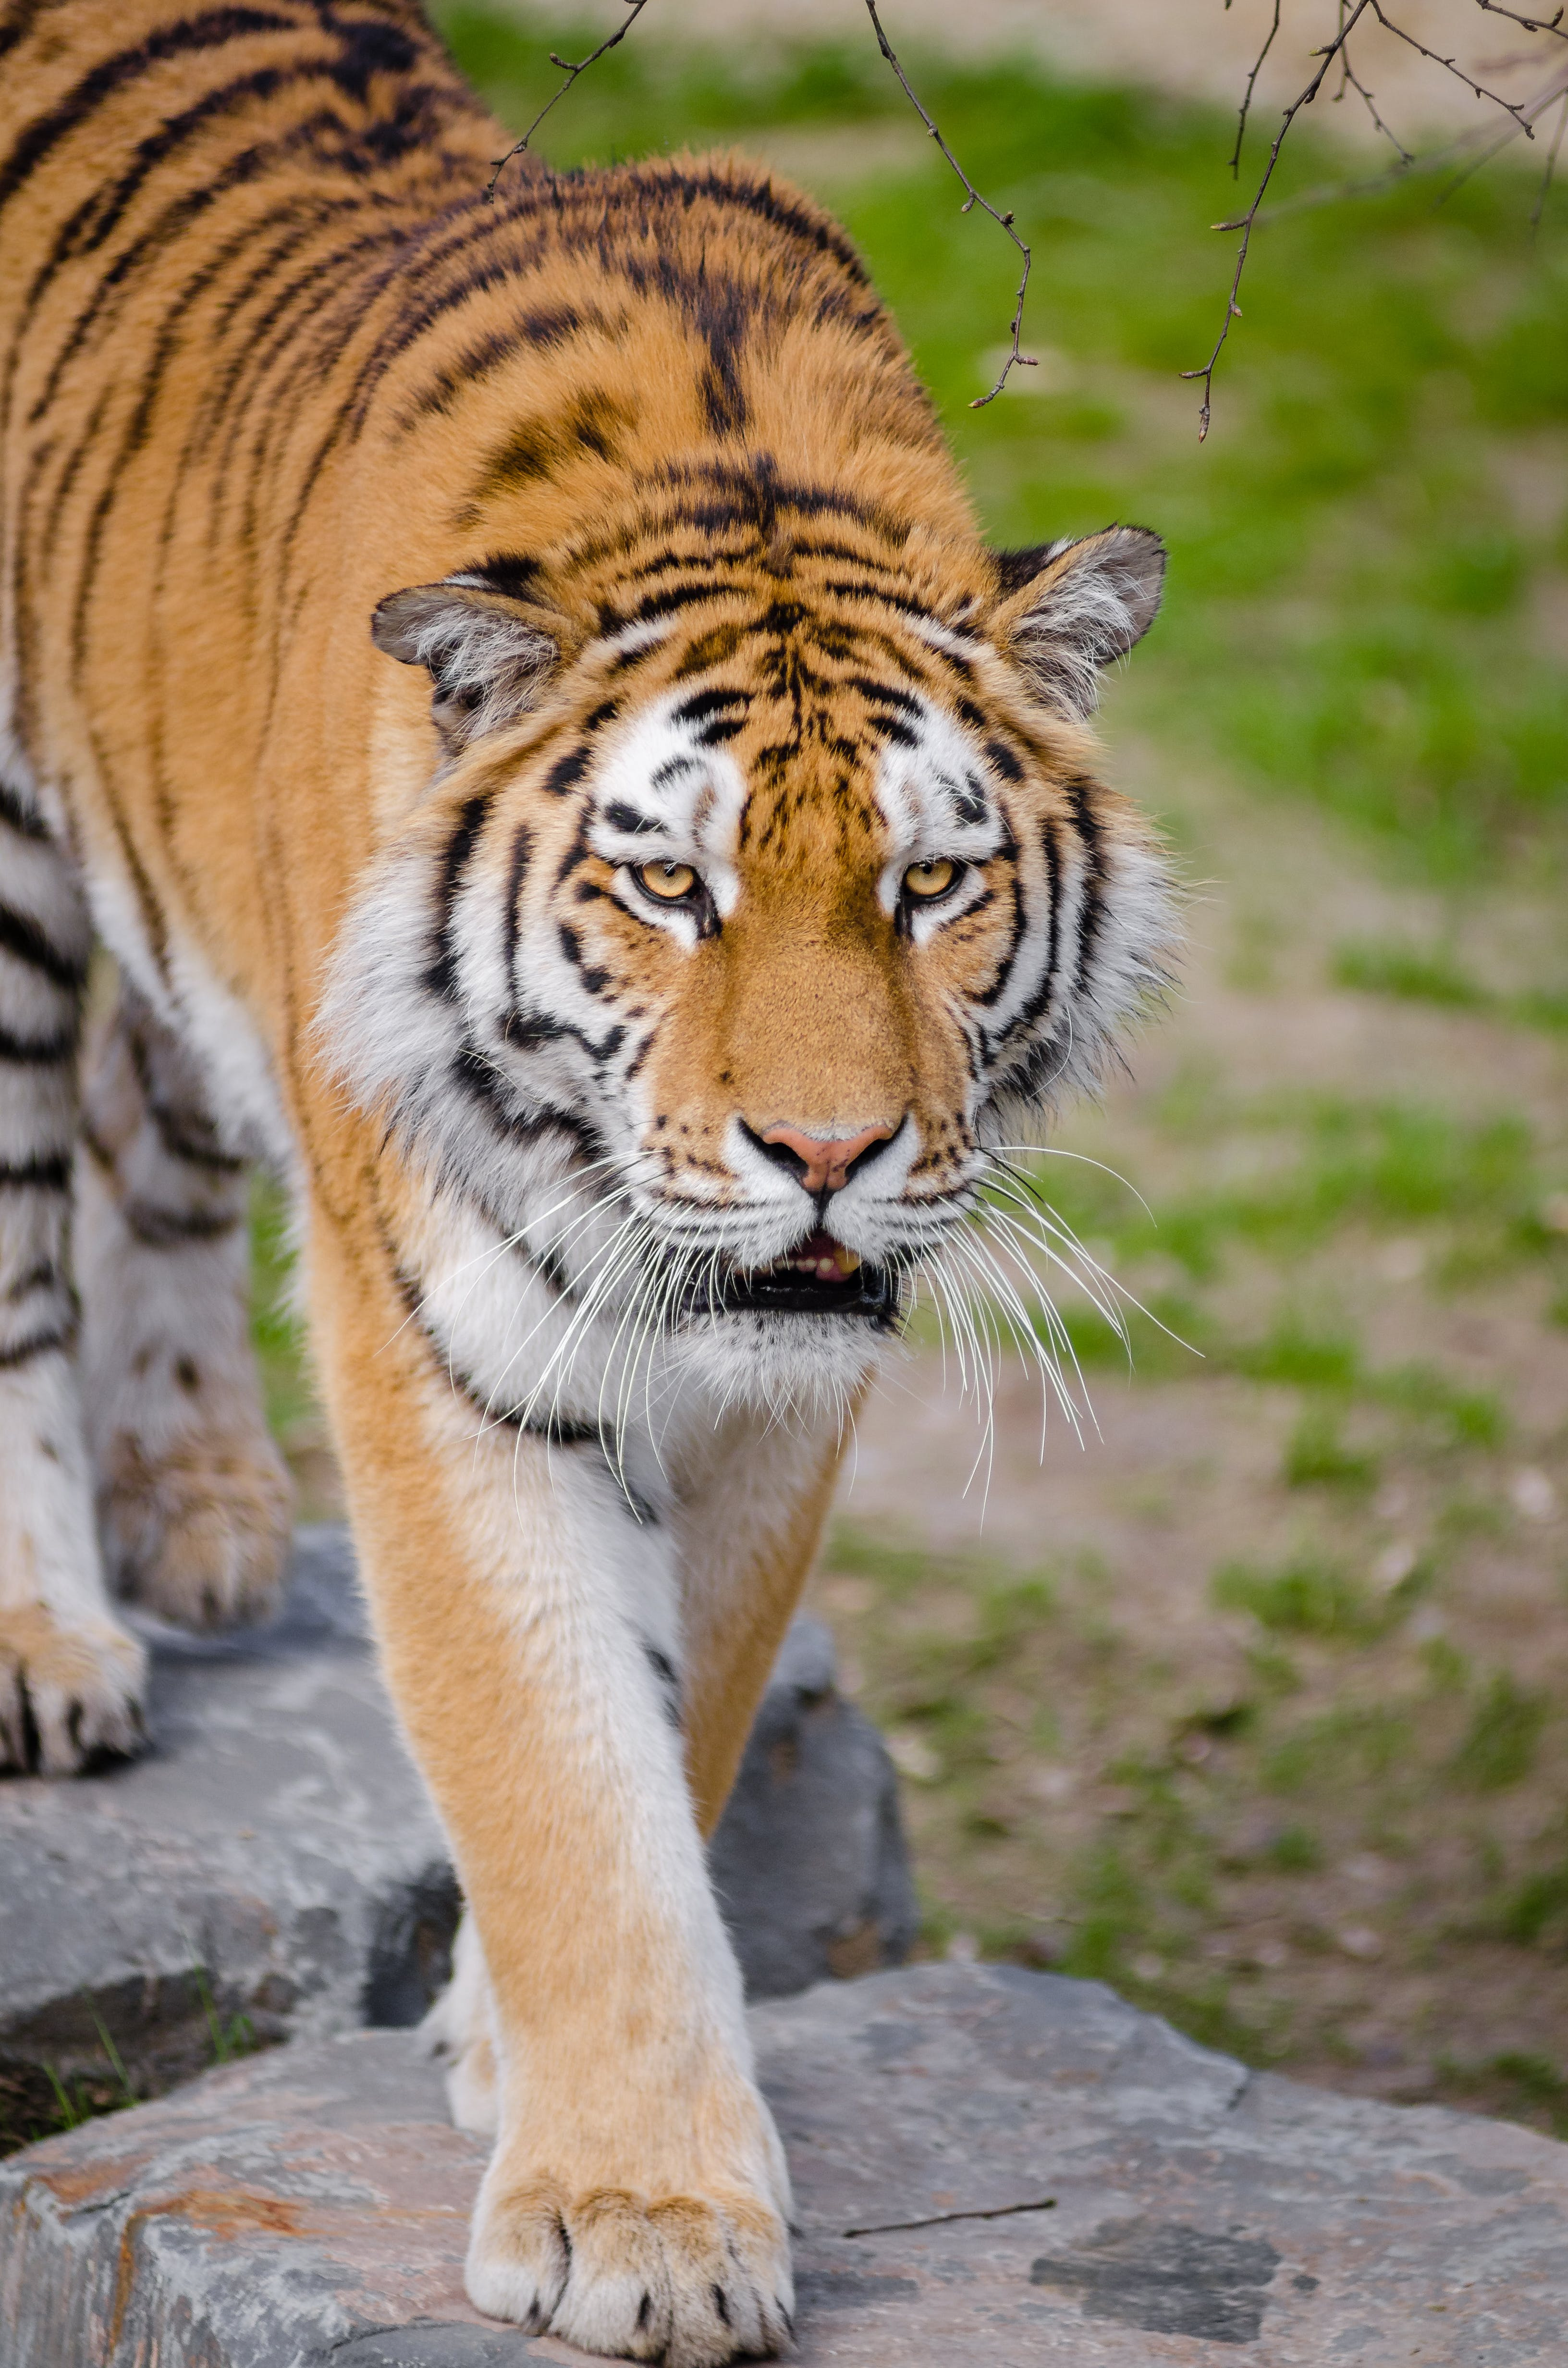 Shallow Focus Lens Photography of Tiger